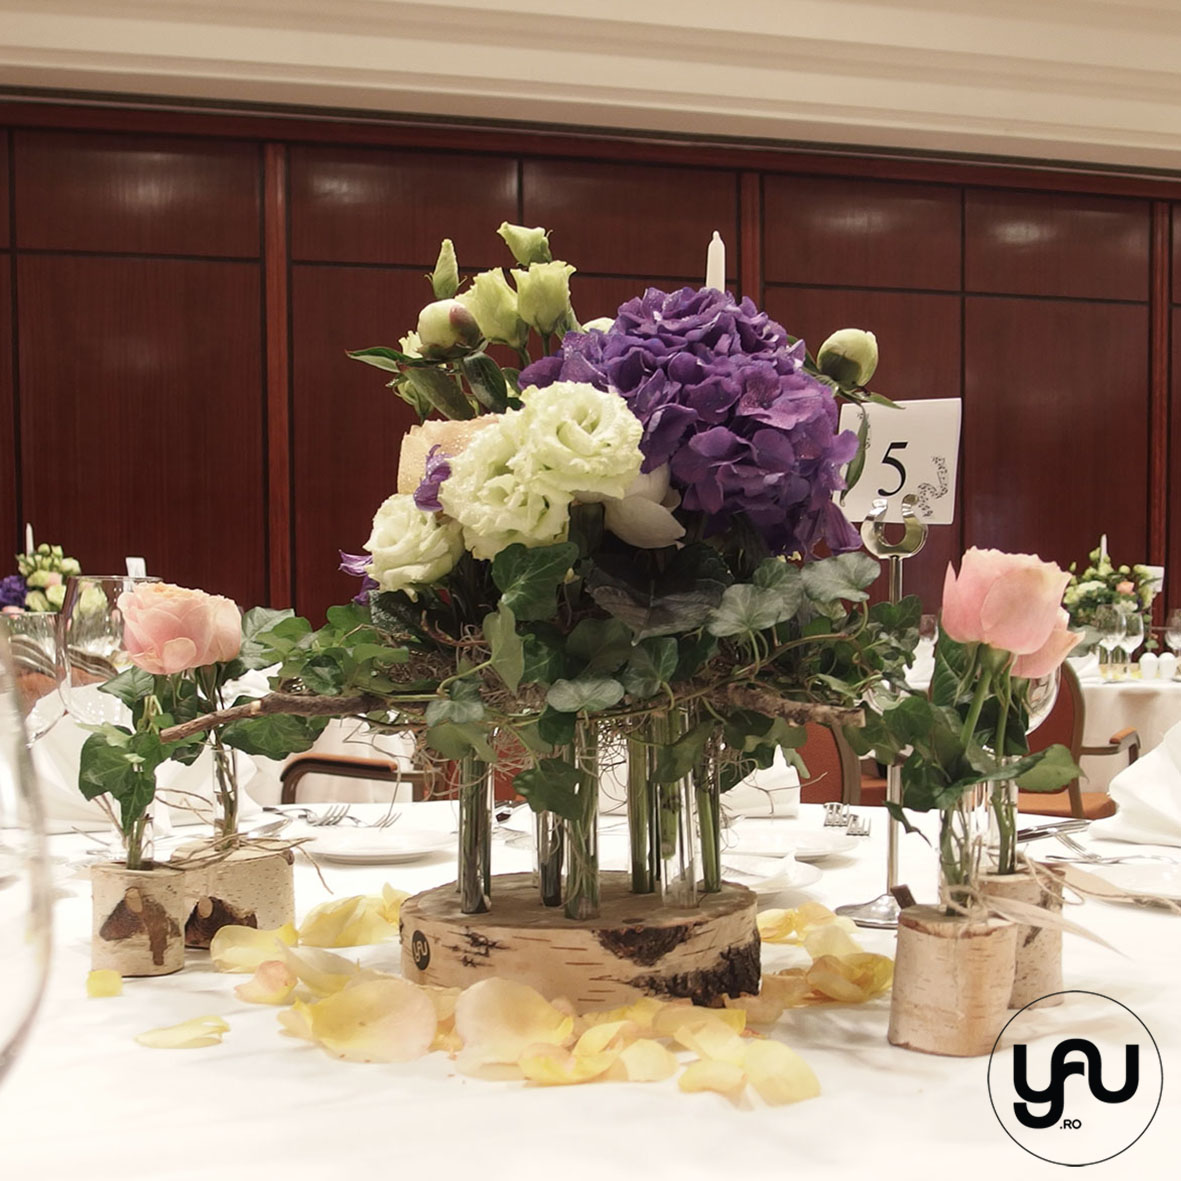 0_YaU Concept_YaU events 2015_peach & blue 2015_crowne laza bucuresti _ elena toader (13)